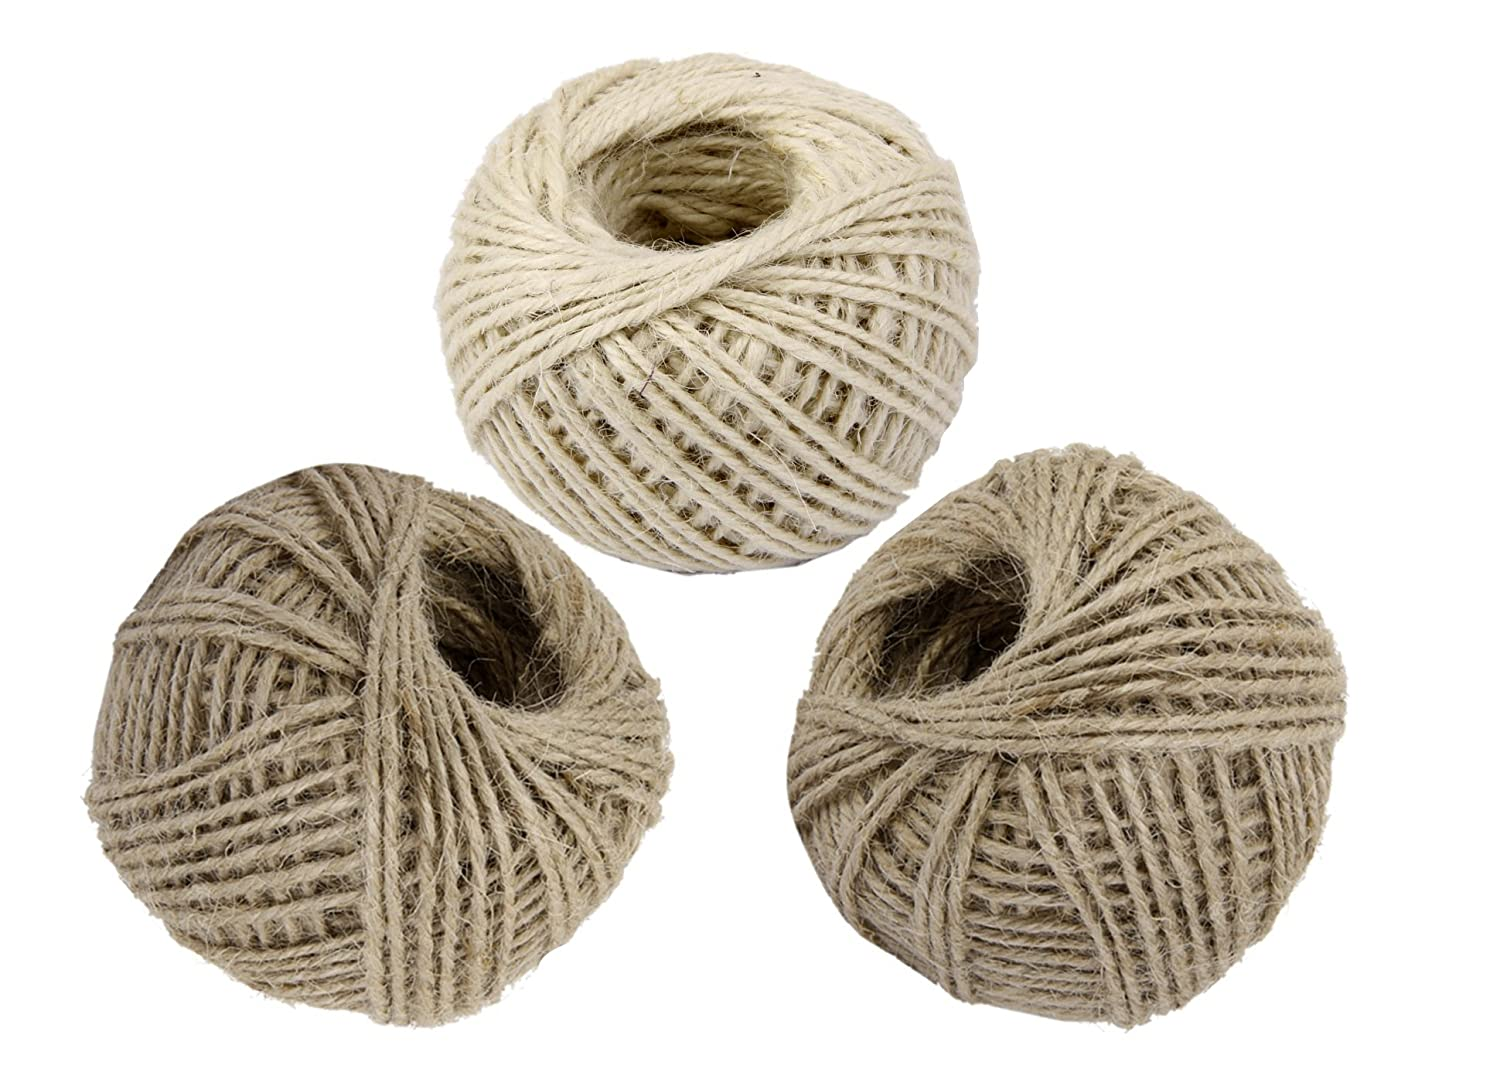 3 Roll 50M (Total 150M) Natural Jute Twine, Wrap Gift Thick Hemp Rope Jute Code String Ball for Floristry, Tags, Gifts, Greeting Card, DIY Arts&Crafts, Garden, Decoration and Recycling 2MM in Diameter(2 Brown, 1 White) YIRANFANTASY